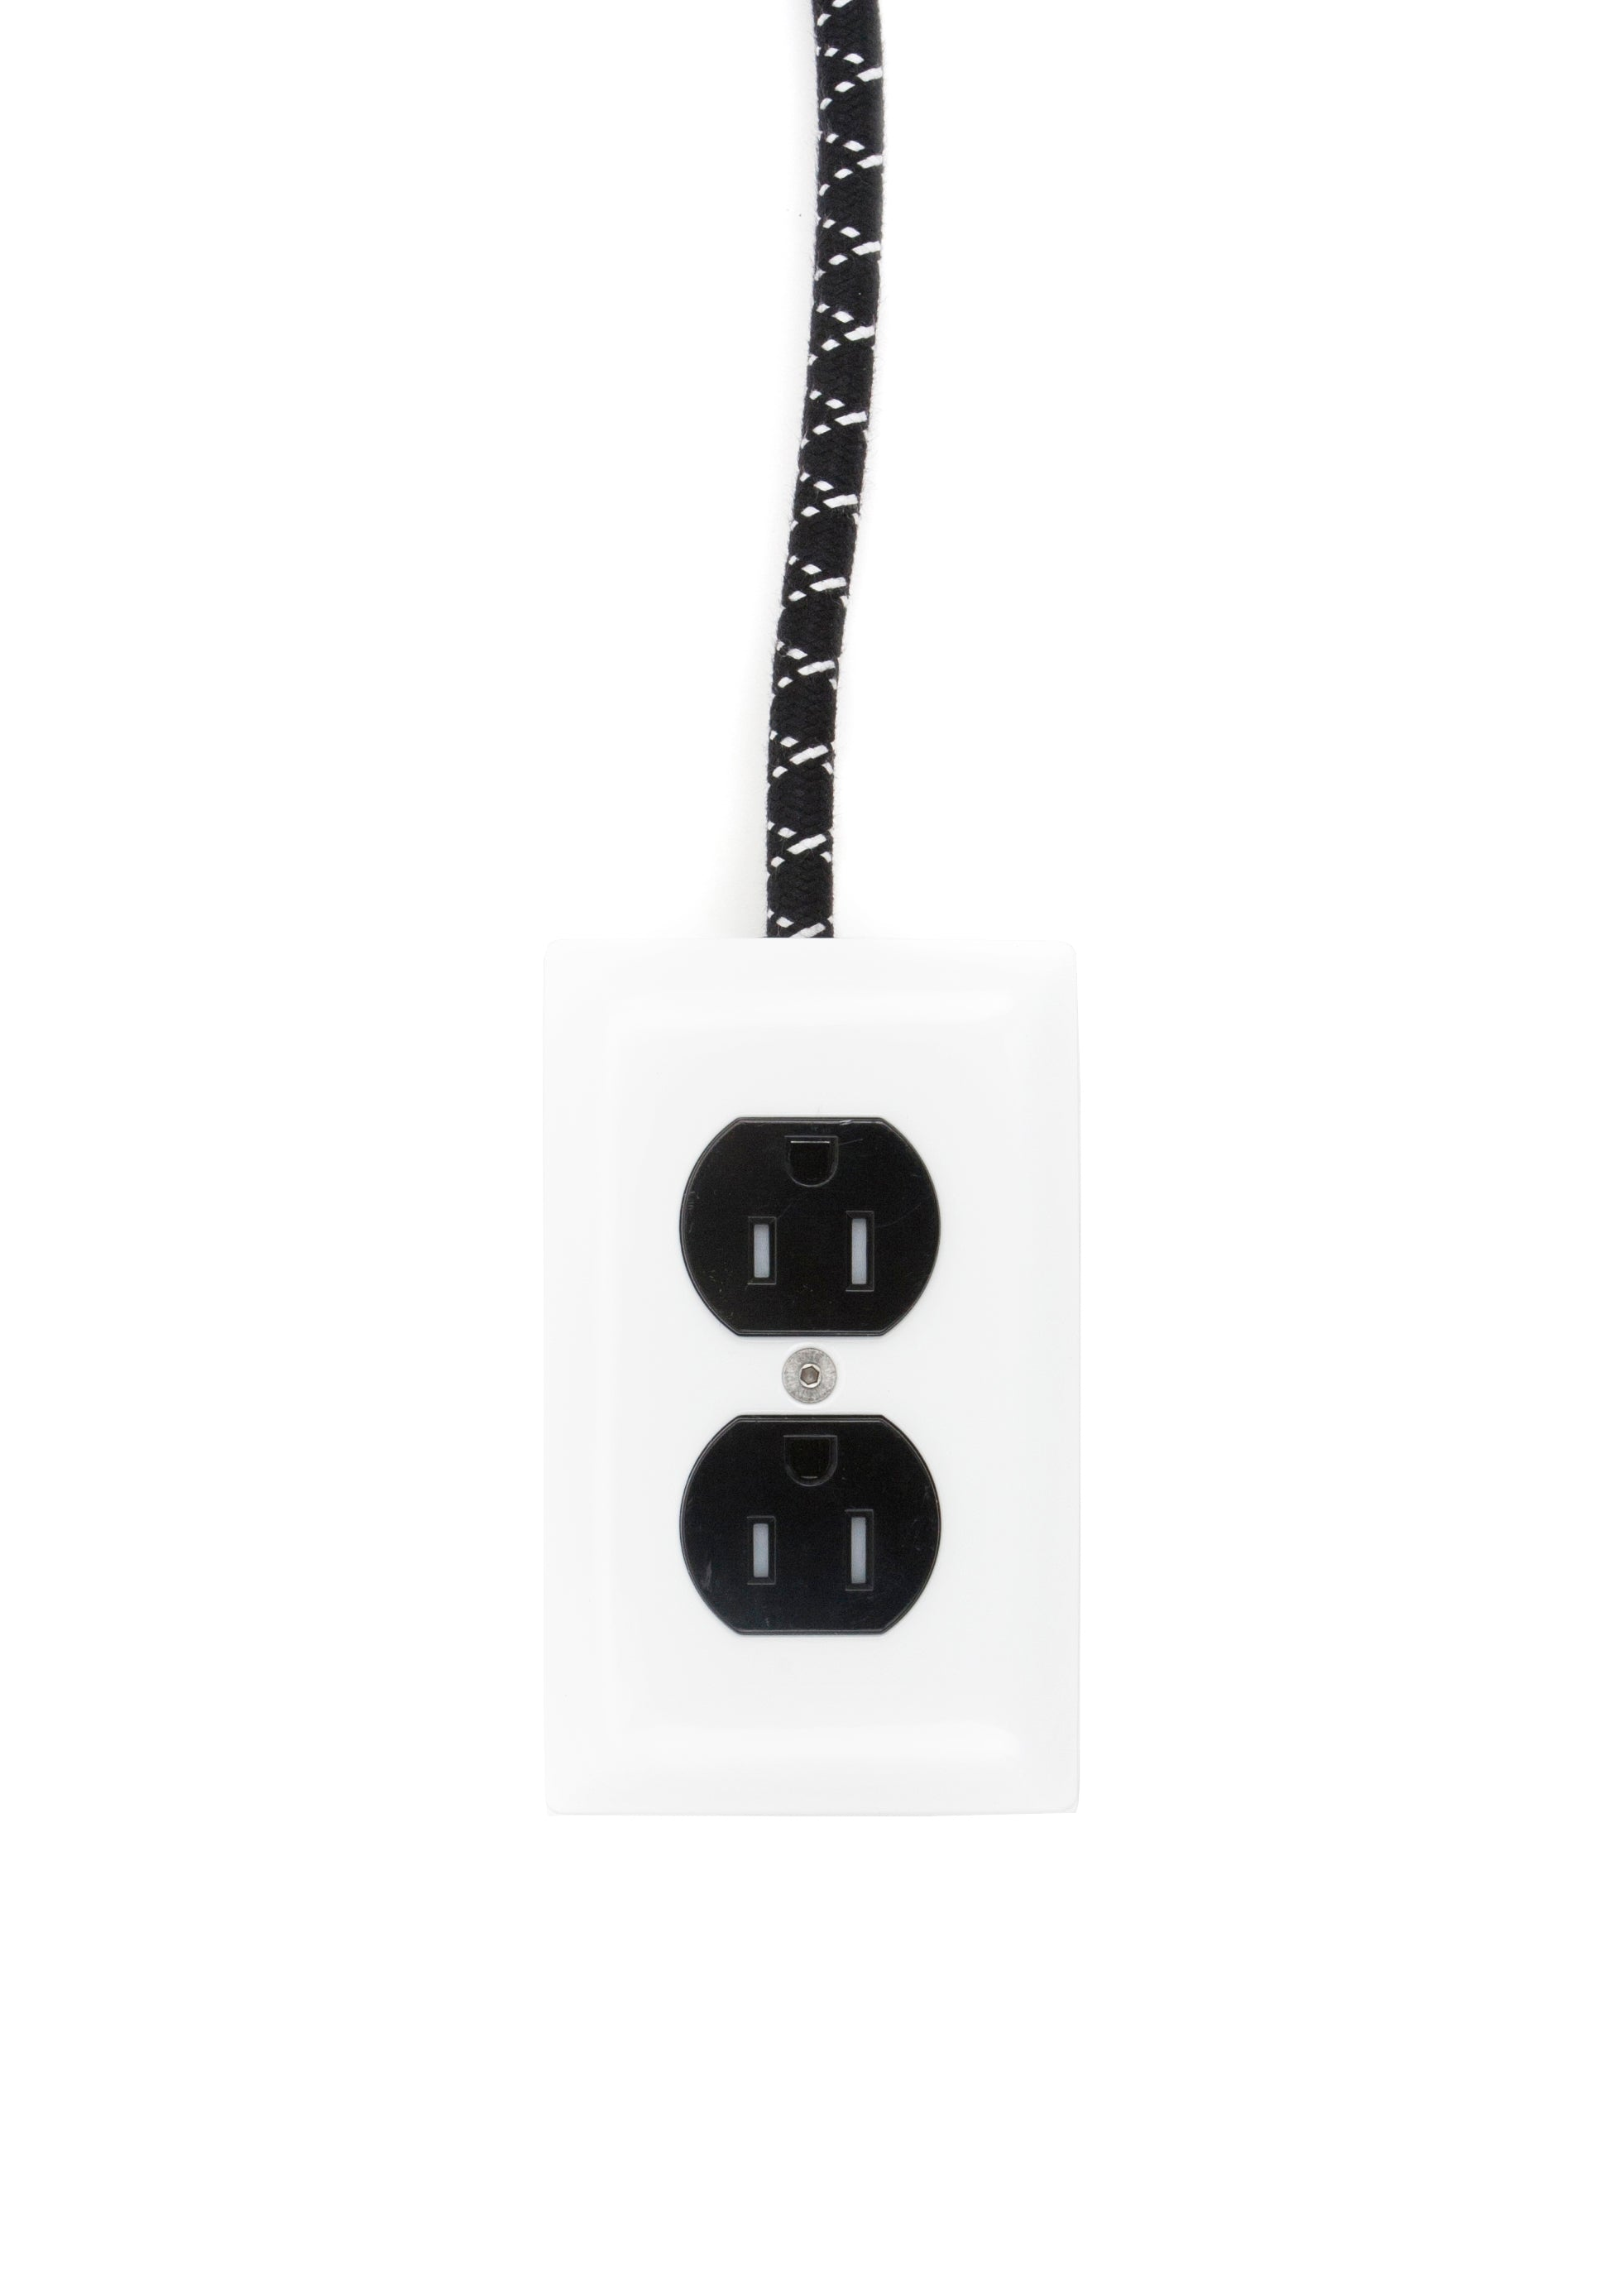 Extō AC/DC Black & White - A Modern Dual-Tamper-Resistant Outlet, 15-AMP Extension Cord